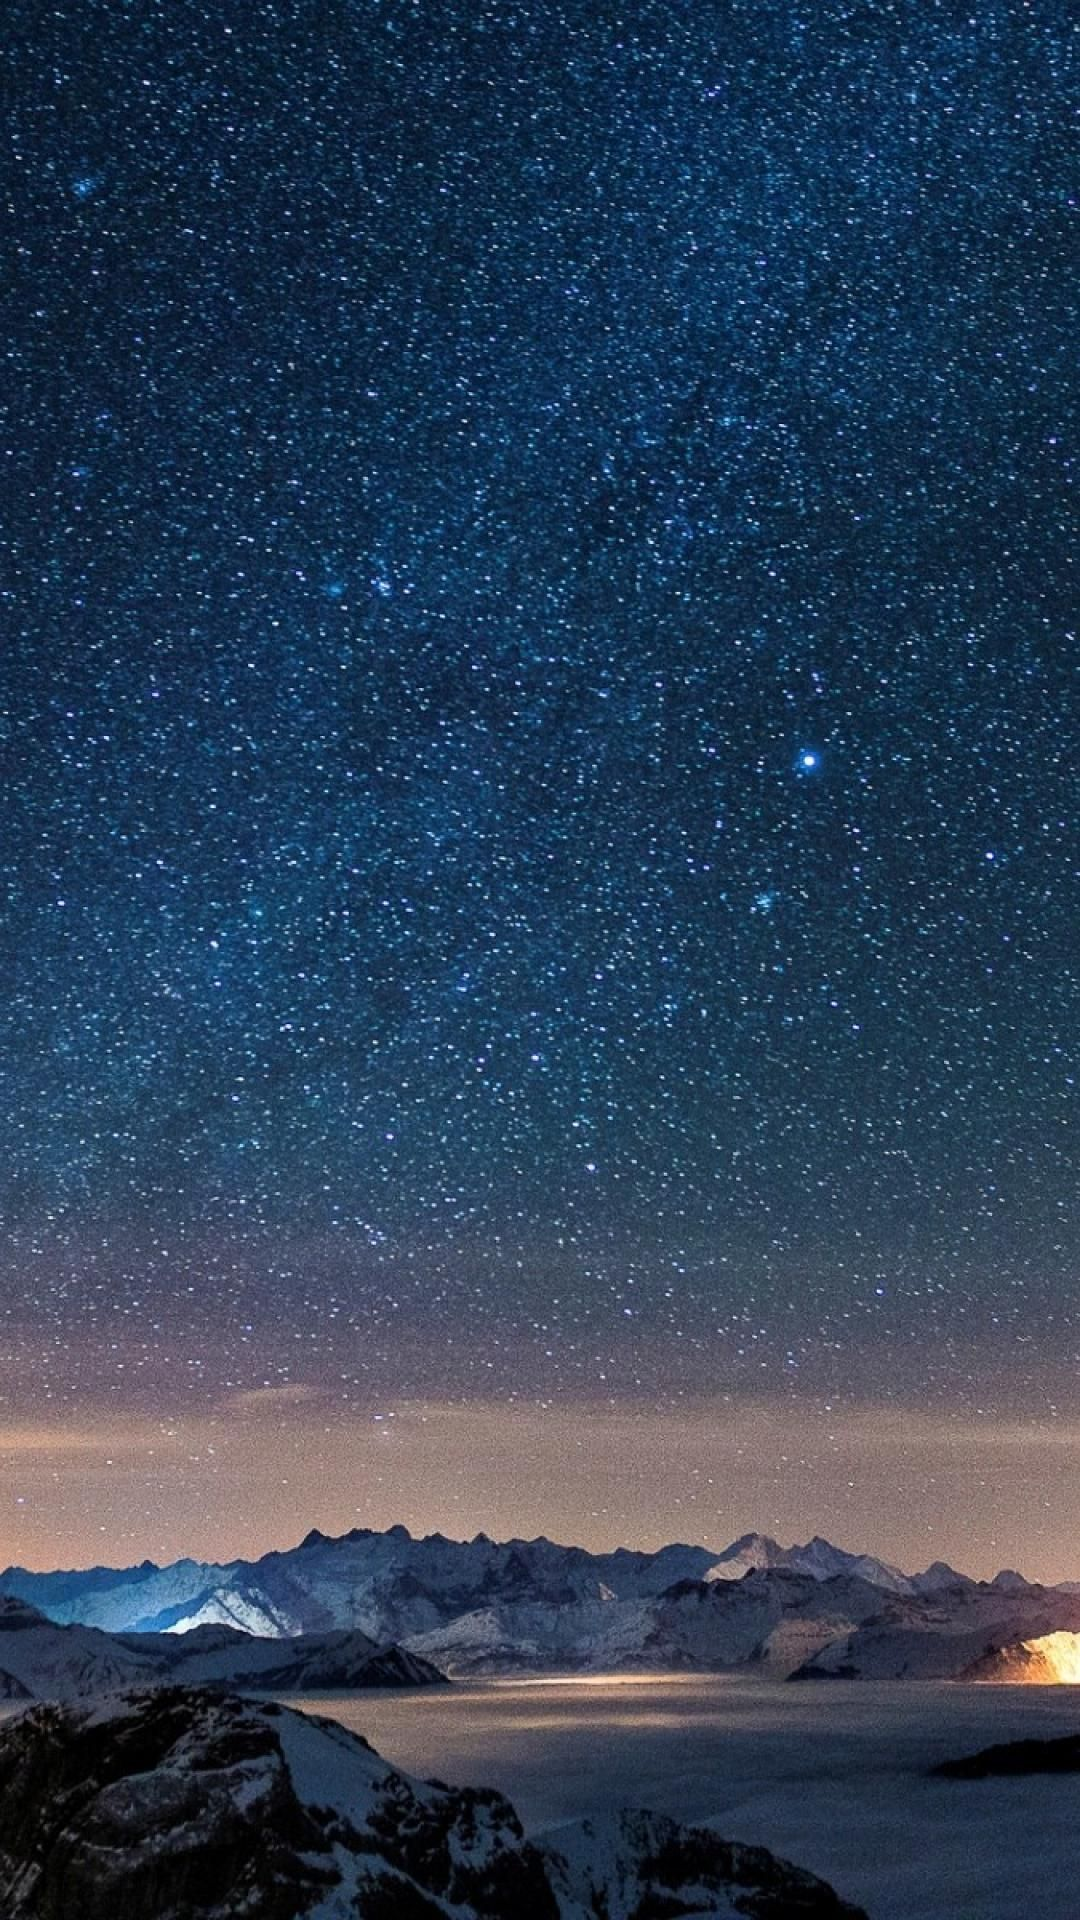 Beautiful starry sky iPhone wallpaper 携帯電話の壁紙, Iphone 壁紙